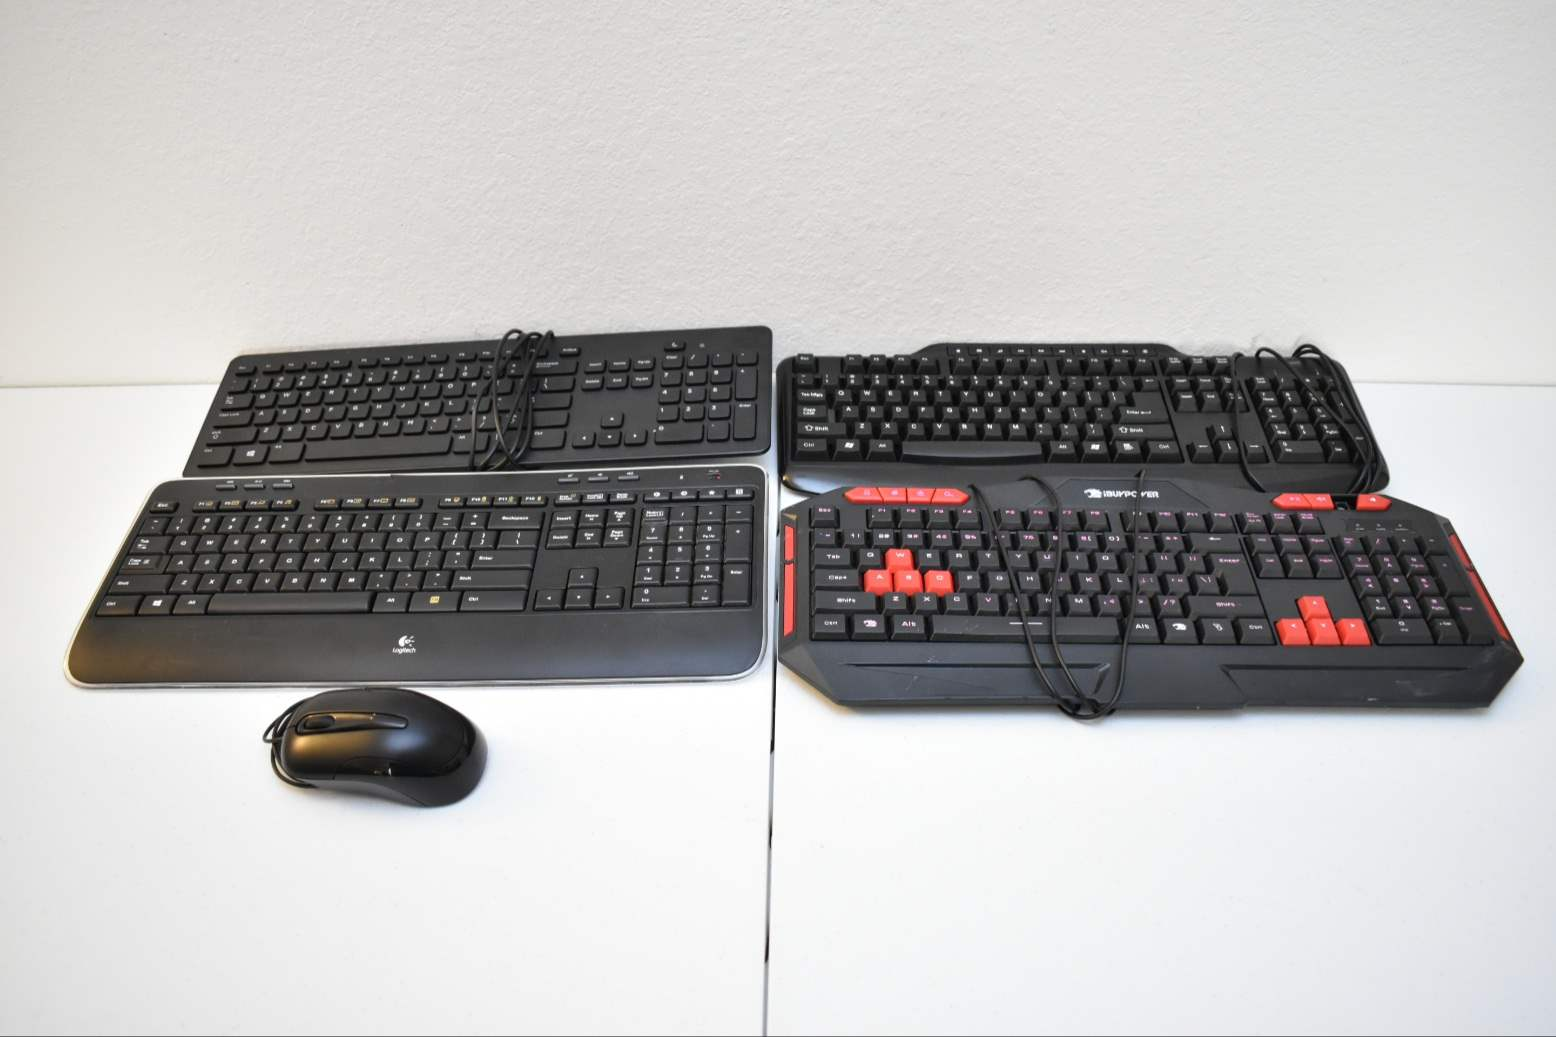 Mouse and Keyboards with gaming keyboard